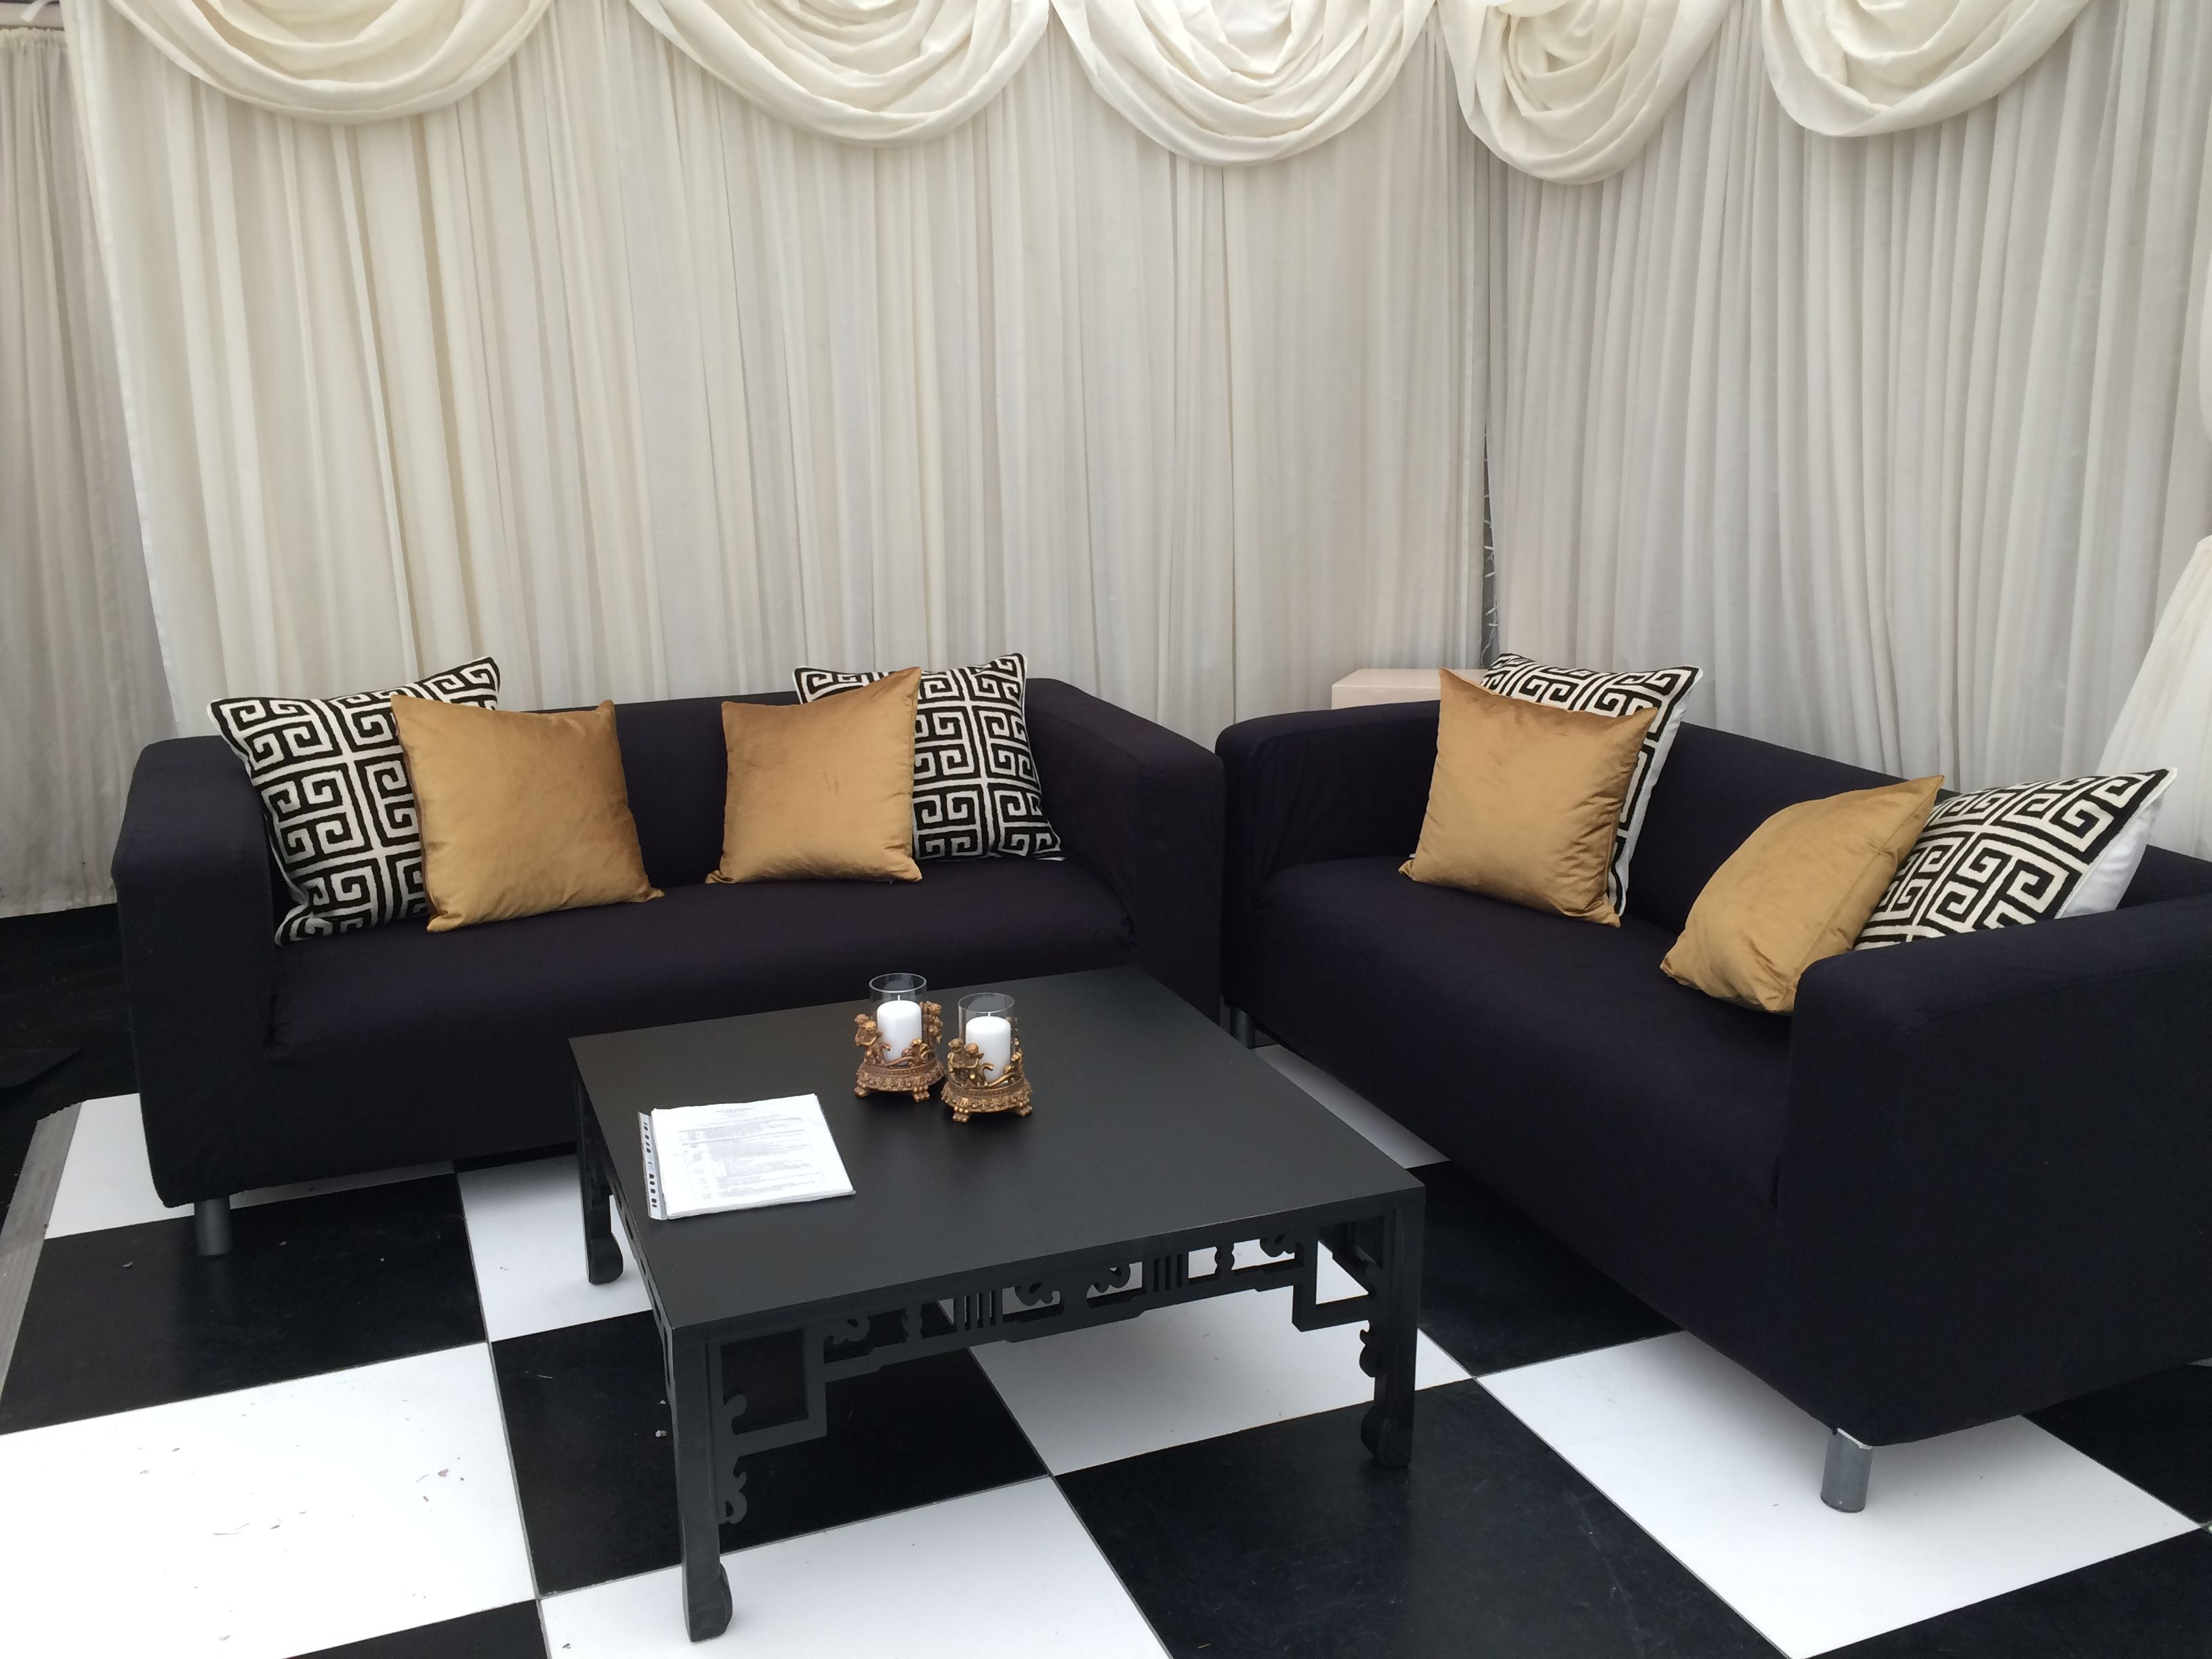 Black sofas with black & gold luxury cushions in the cake corner